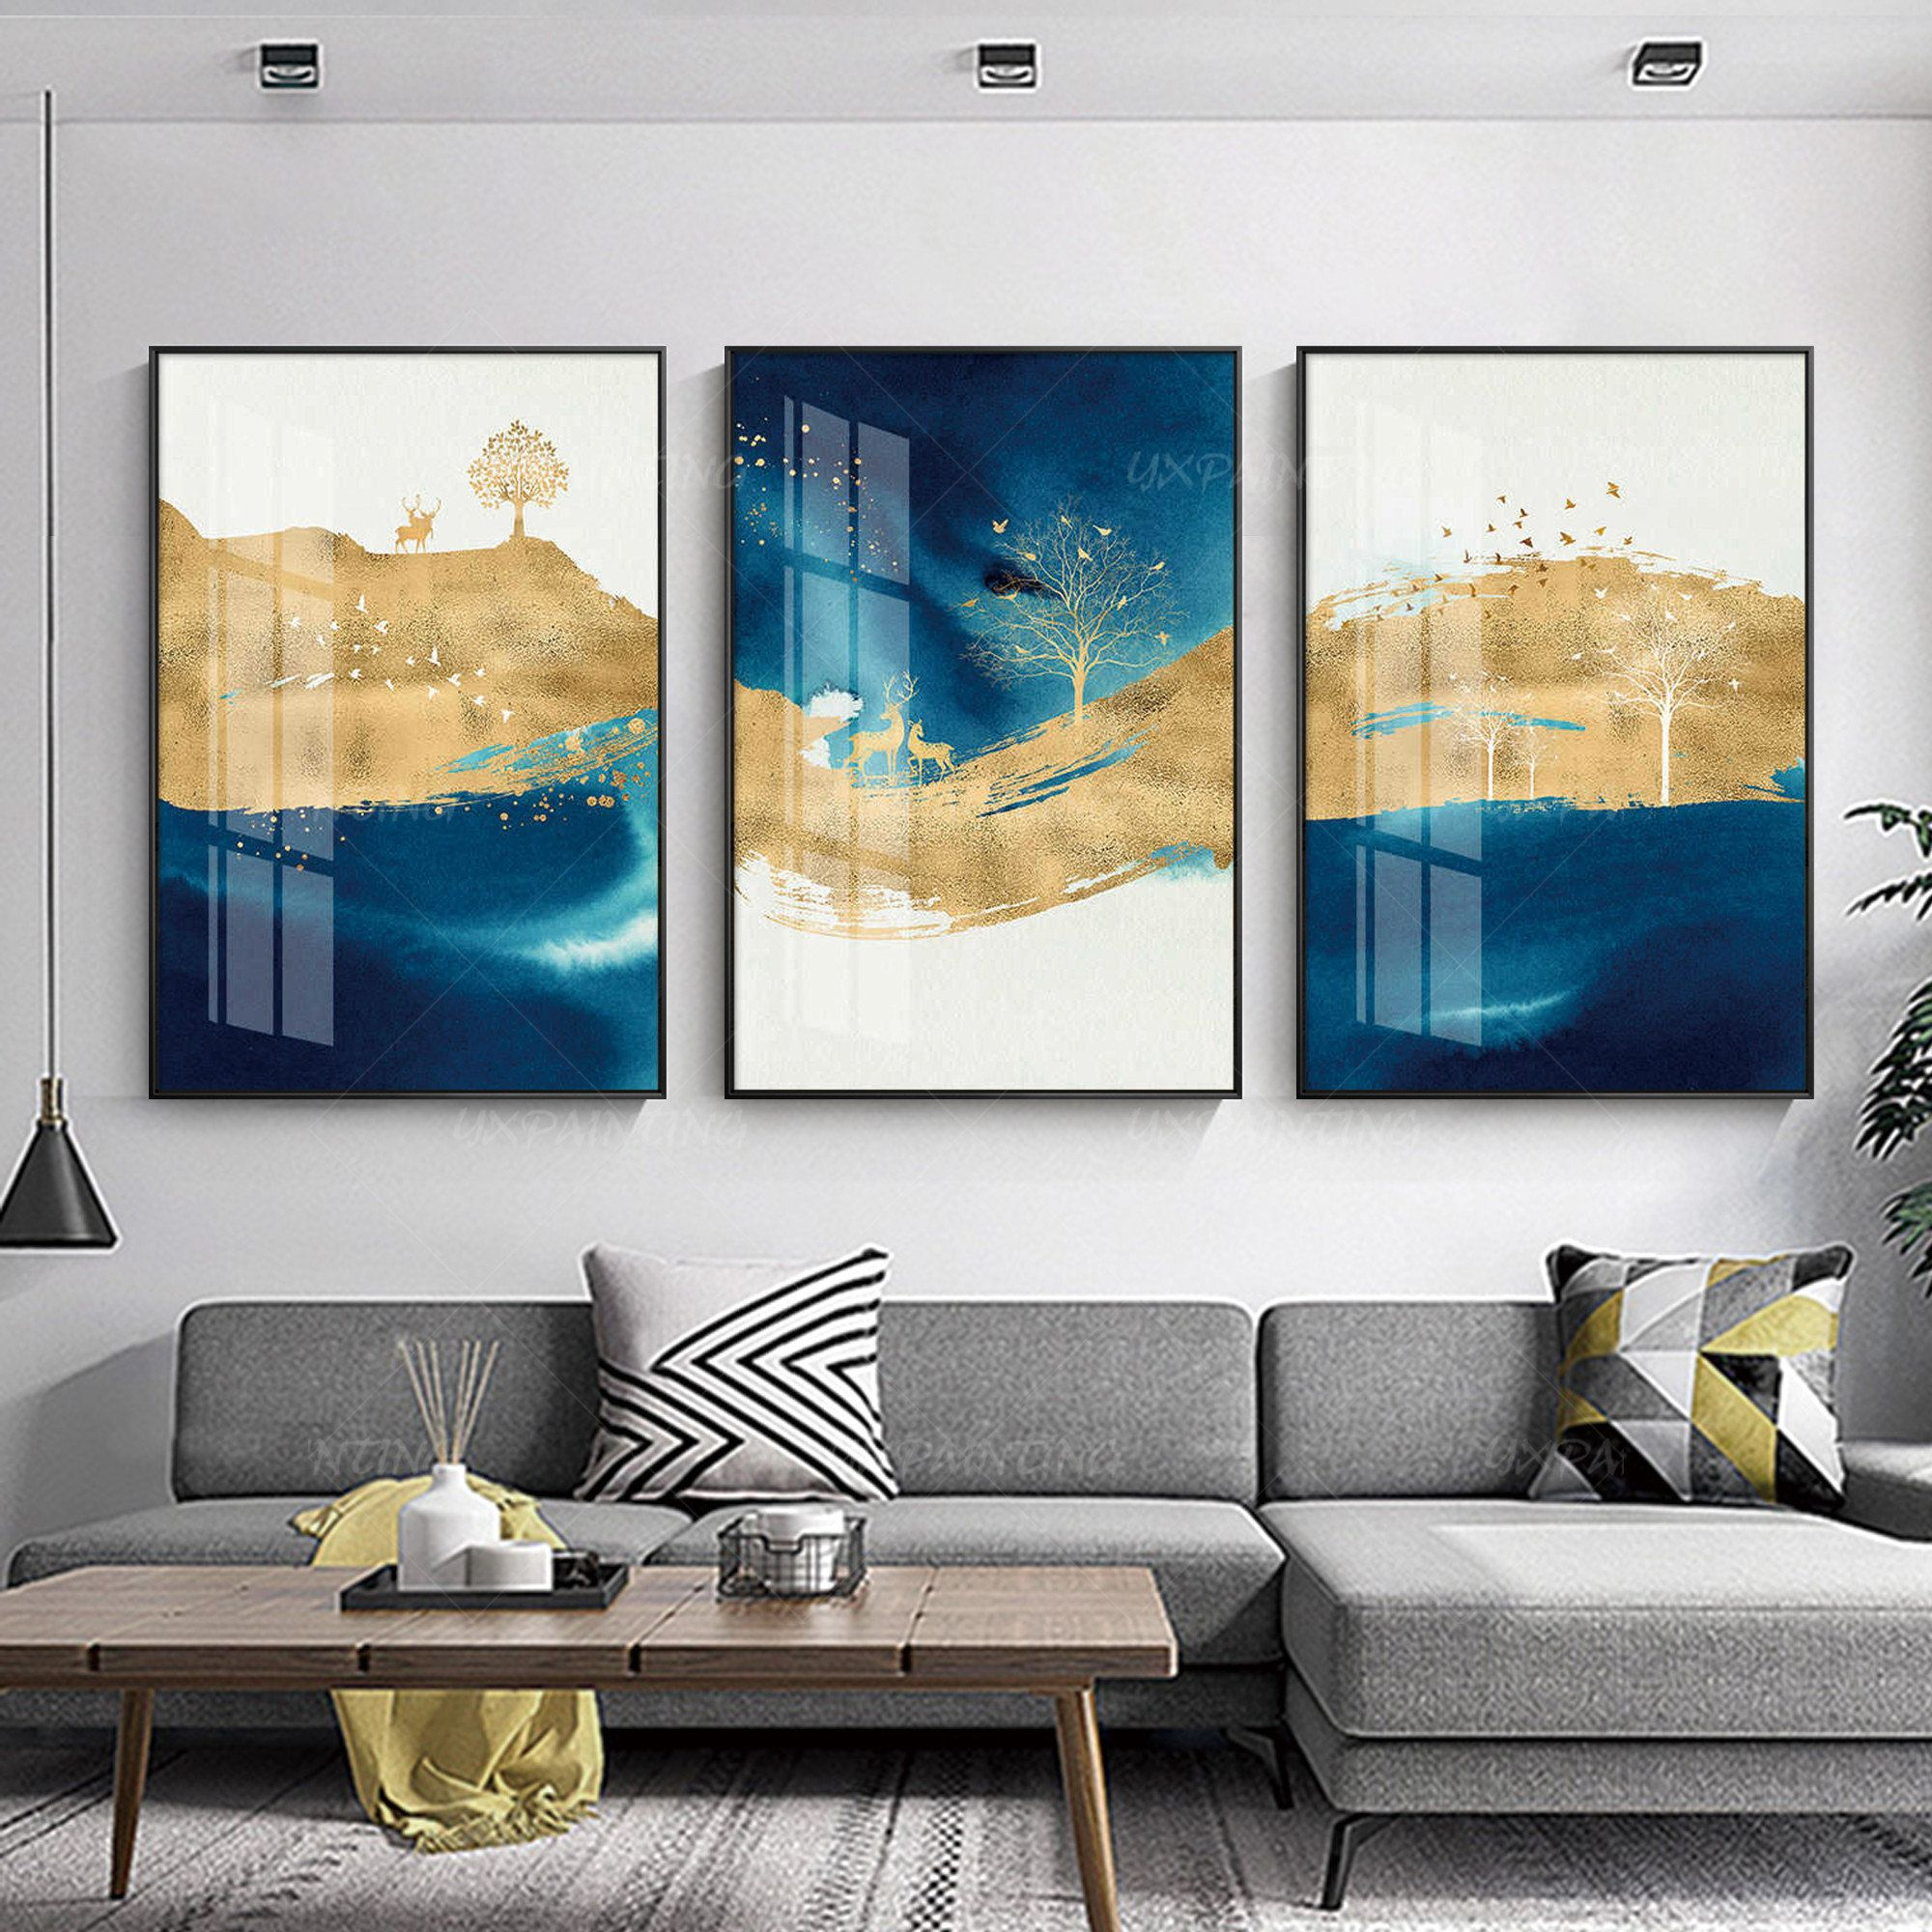 Framed Painting Gold Art Blue Painting 3 Pieces Wall Art Etsy In 2021 Blue Painting Painting Frames 3 Piece Wall Art